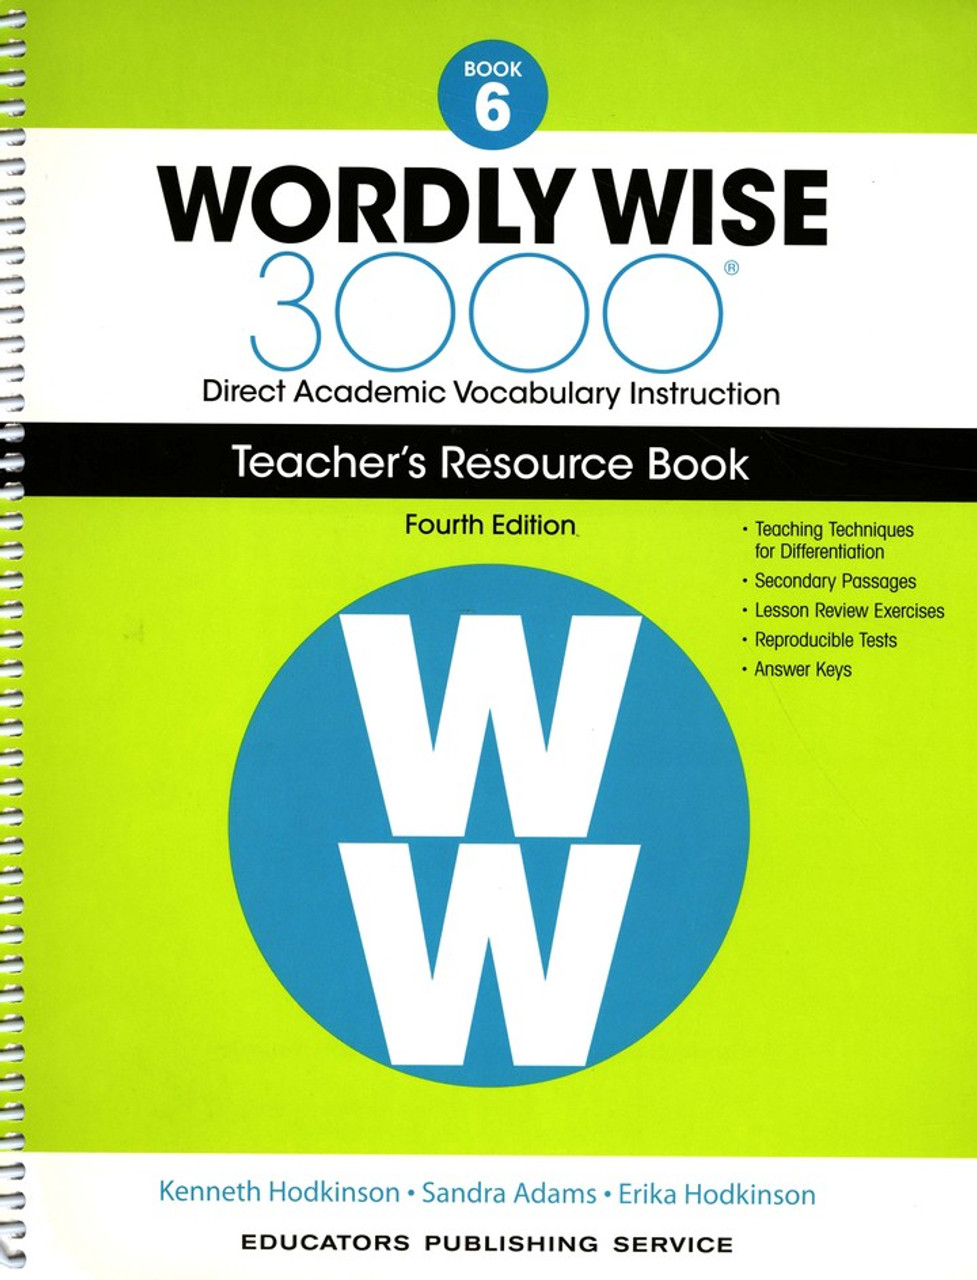 Wordly Wise 3000 4th Edition Book 6 Teacher Resource Book